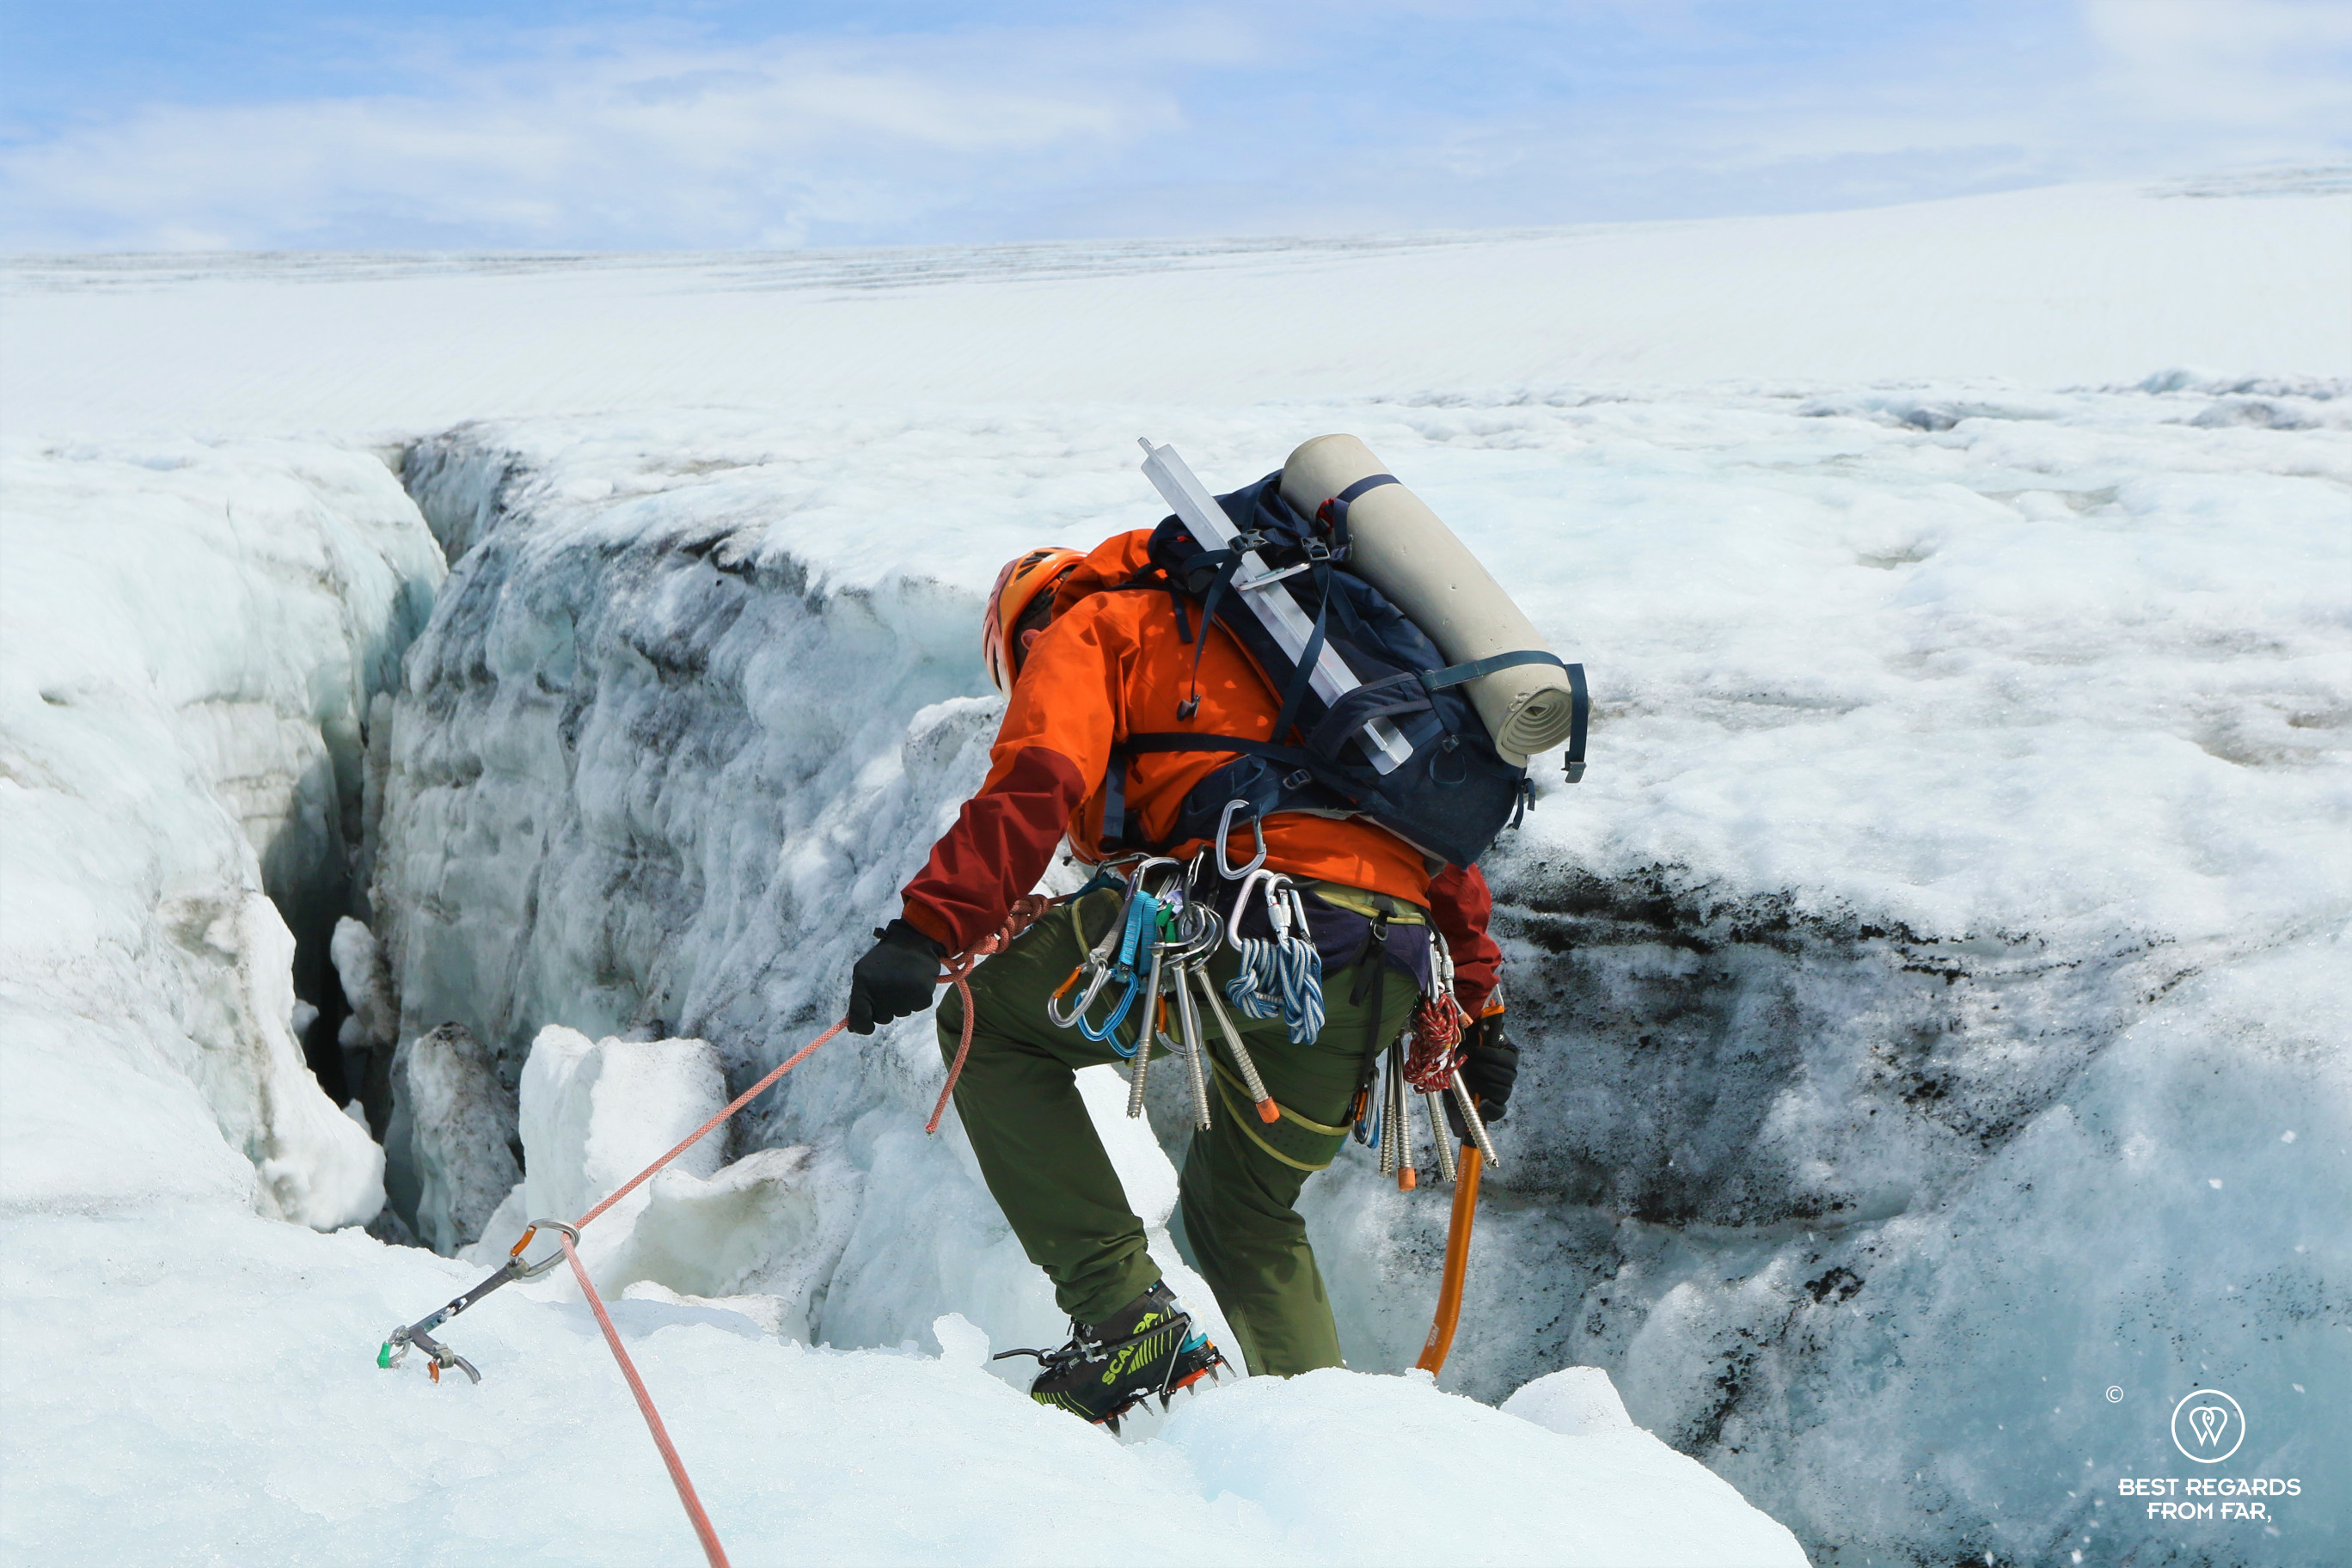 Guide Thorbjørn Helgesen leading the way to explore a crevasse on the Fonna Glacier